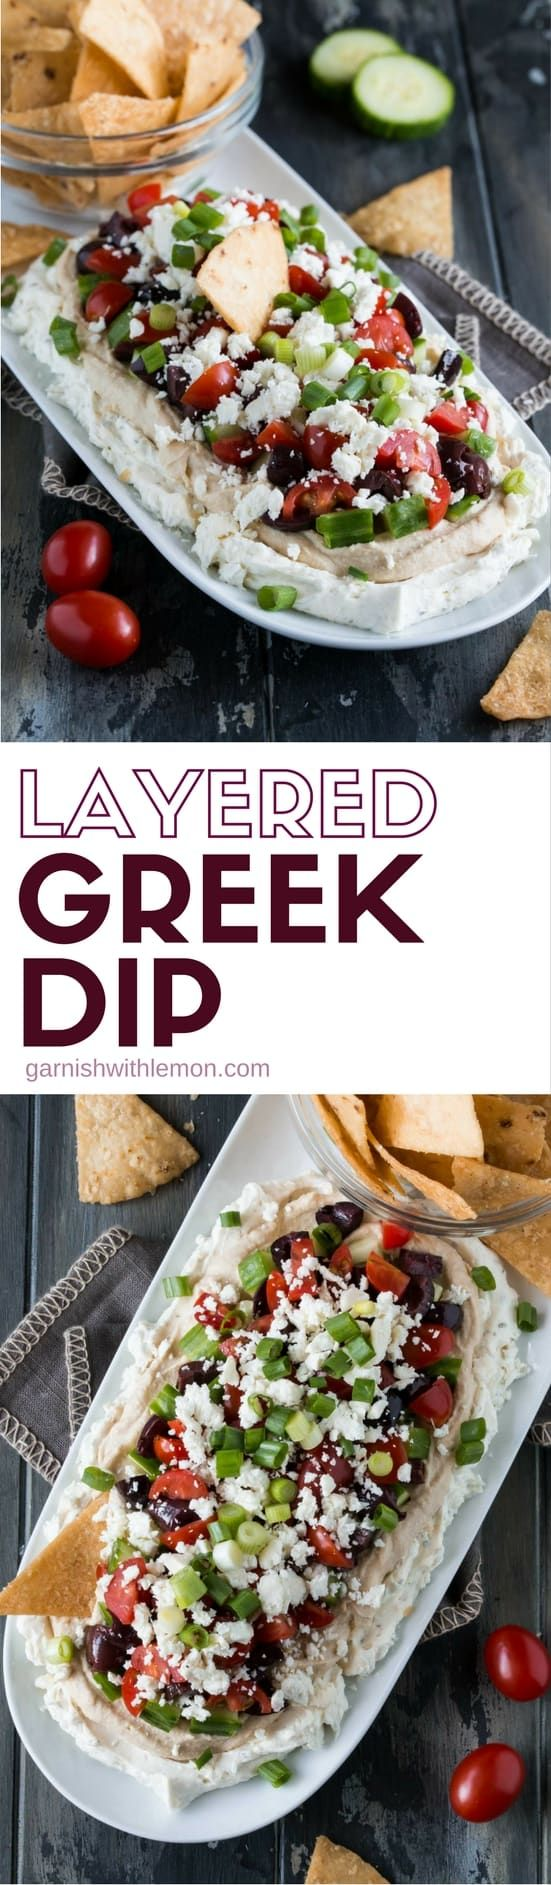 Healthy doesn't have to mean boring! Check our our healthier take on a traditional 7-layer dip with this veggie-filled Layered Greek Dip!